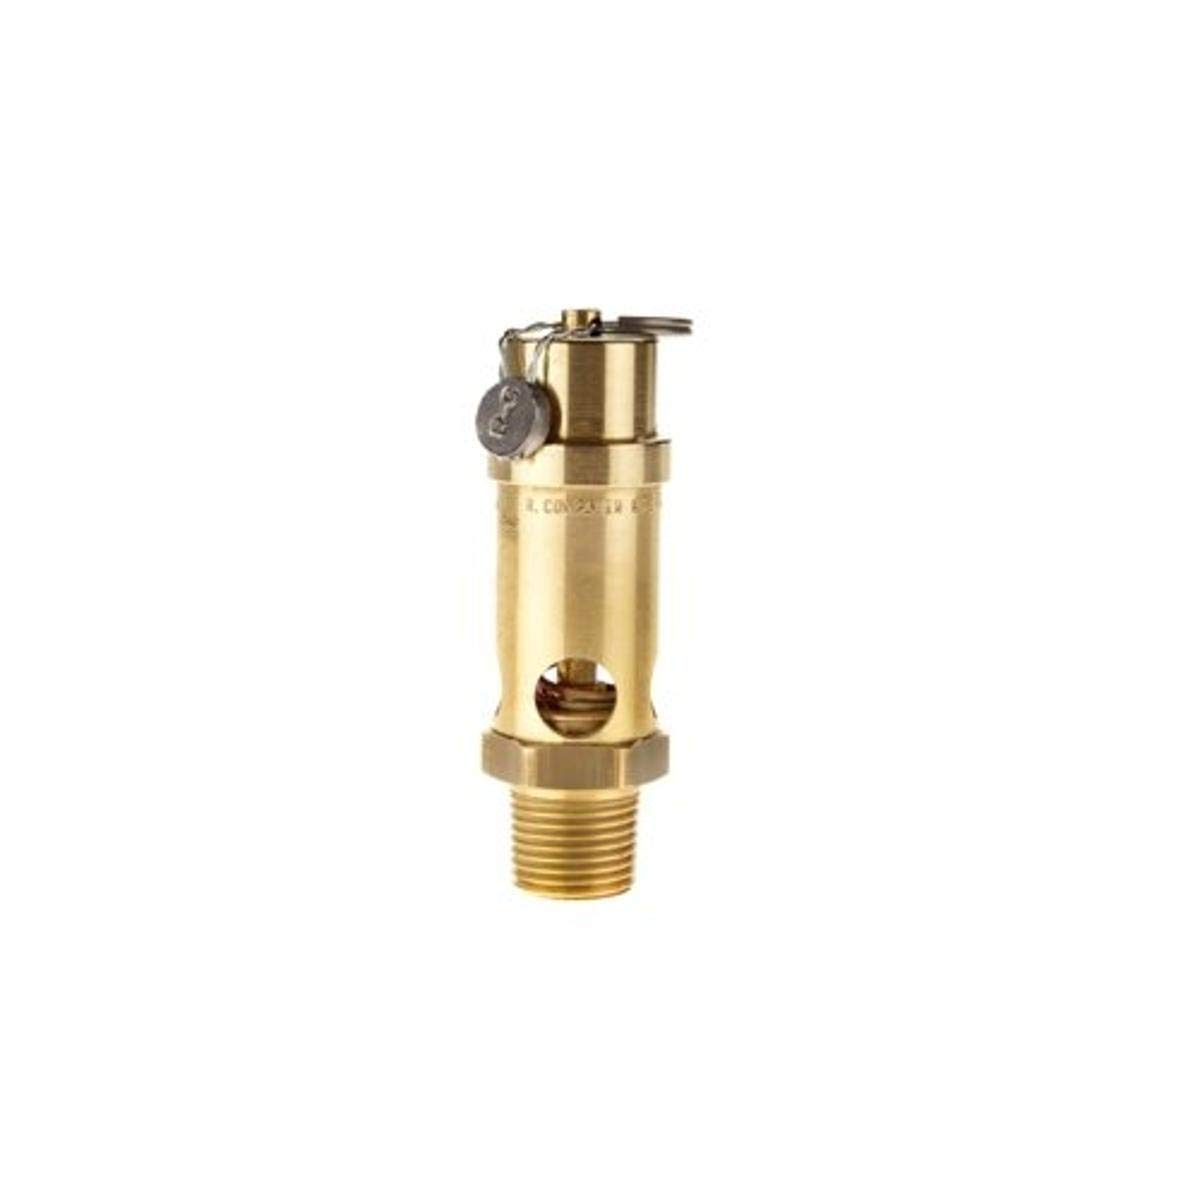 Midwest Control SRV530-50-150 ASME Soft Seat Safety Valve, 150 psi, -65 Degree Fahrenheit - 400 Degree Fahrenheit Temperature Range, 3.66 Height, 1/2